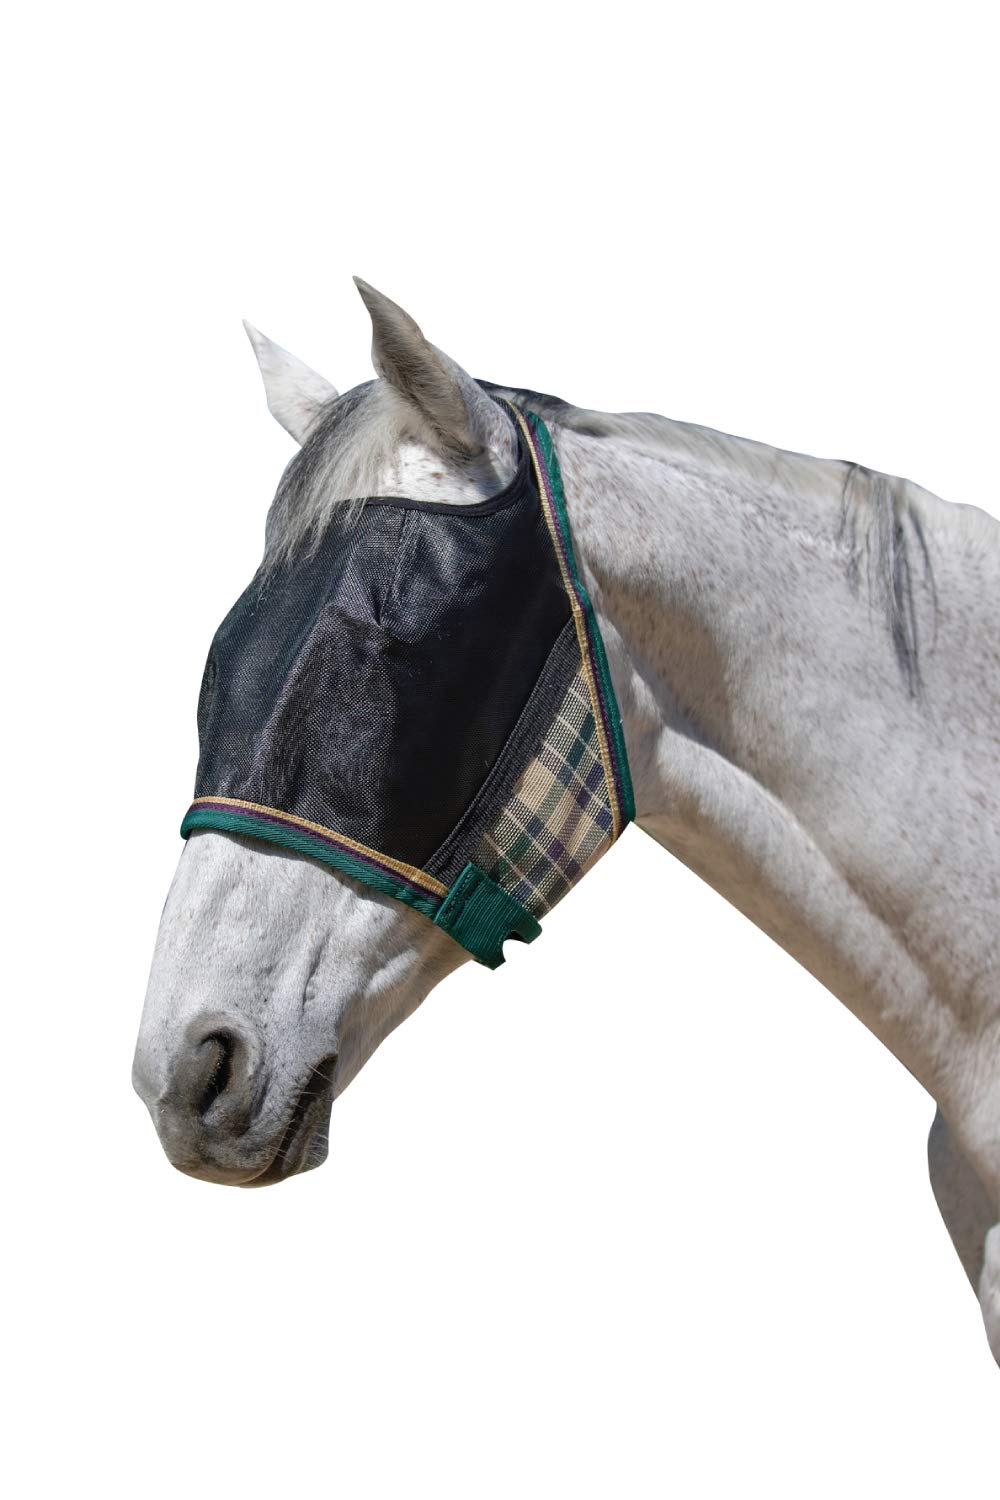 Kensington UViator Protective Fly Mask - Newest UV Solar Screen Protection with a 90% UV Rating - Double Locking CatchMask Fasteners - Non Heat Transferring Fabric (Deluxe Hunter, Large) by Kensington Protective Products